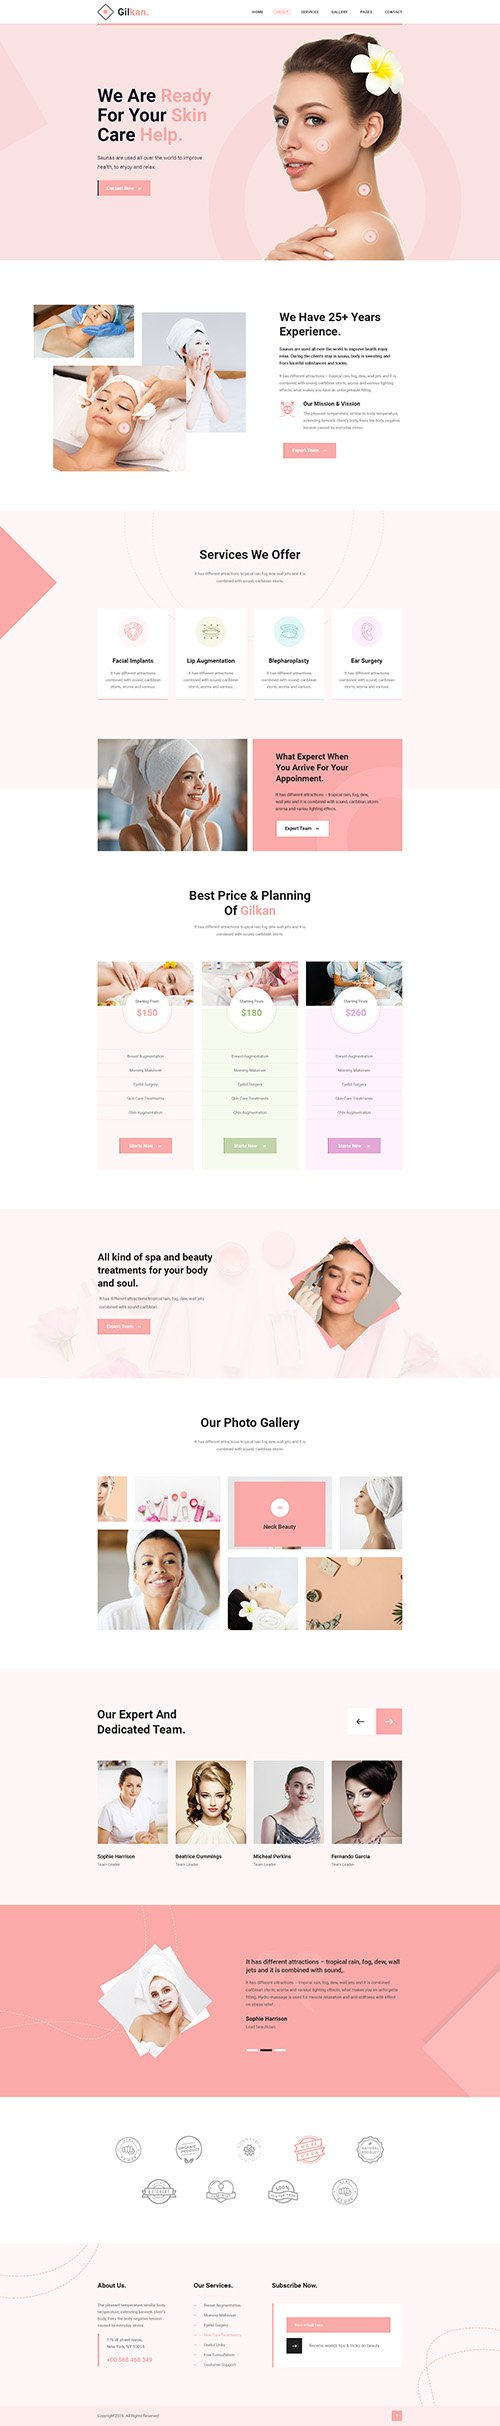 Gilkan - Dermatology and Skin Care Template